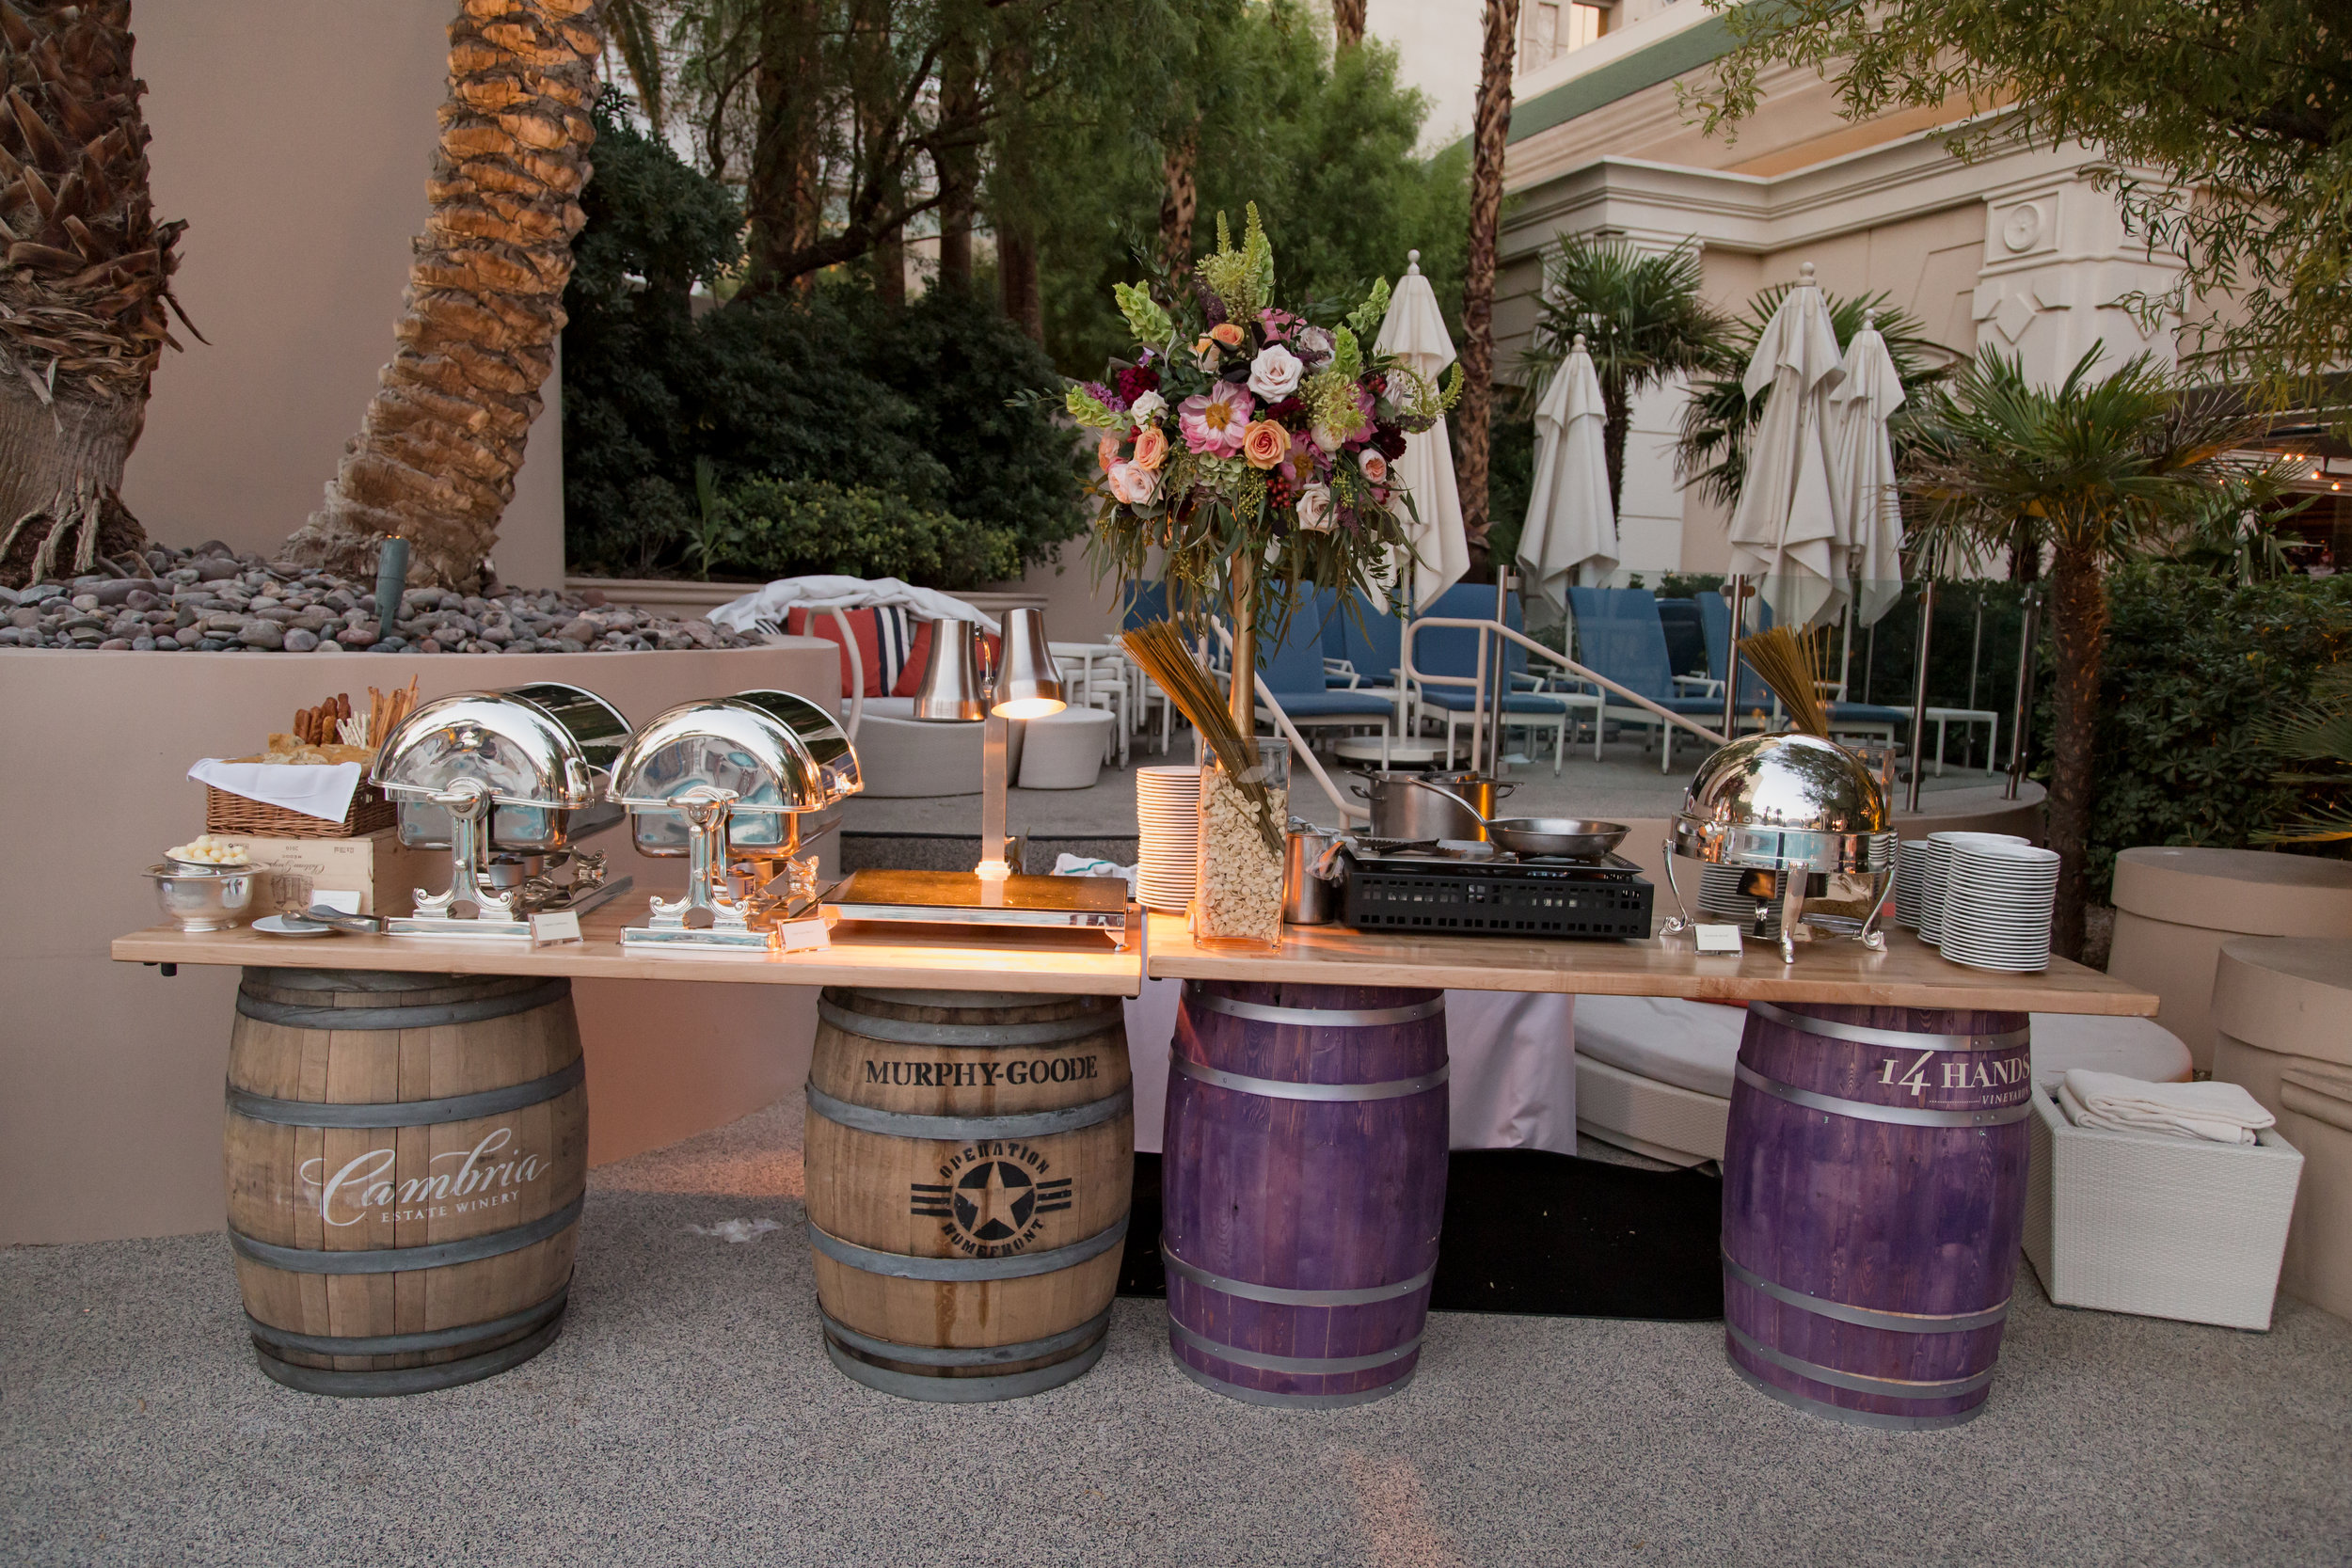 Food stations on wine barrels for wedding at poolside. Destination Wedding Planner  Andrea Eppolito ·Photos by  Adam Frazier Photography ·Floral and Decor by  Destinations by Design · Lighting by  LED Unplugged ·Venue · Invitations  Ceci New York  · Menus by  Alligator Soup